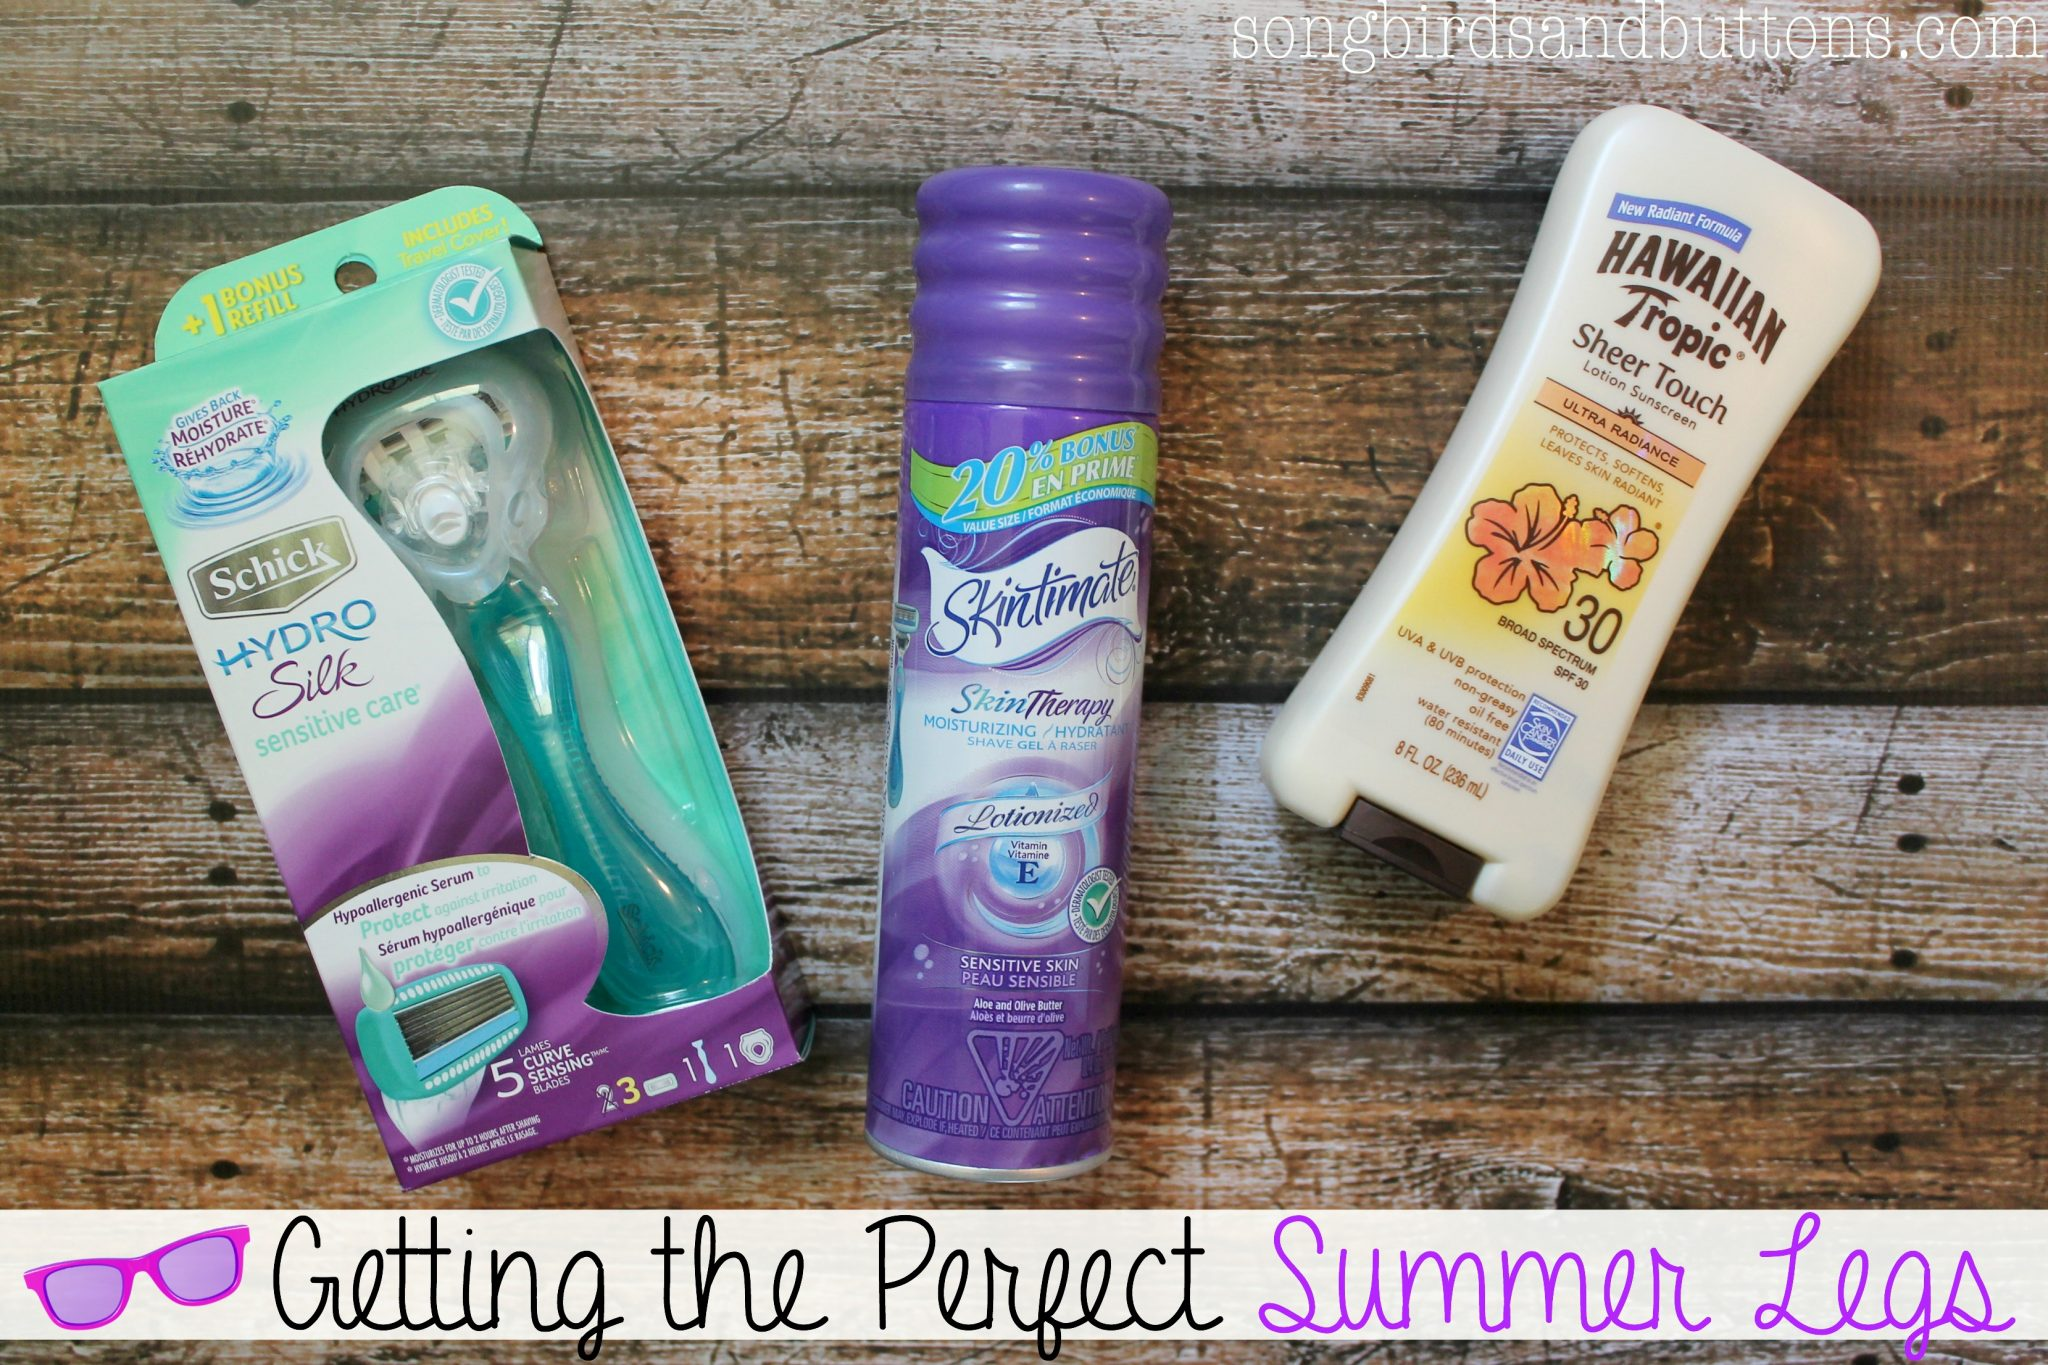 Getting the Perfect Summer Legs